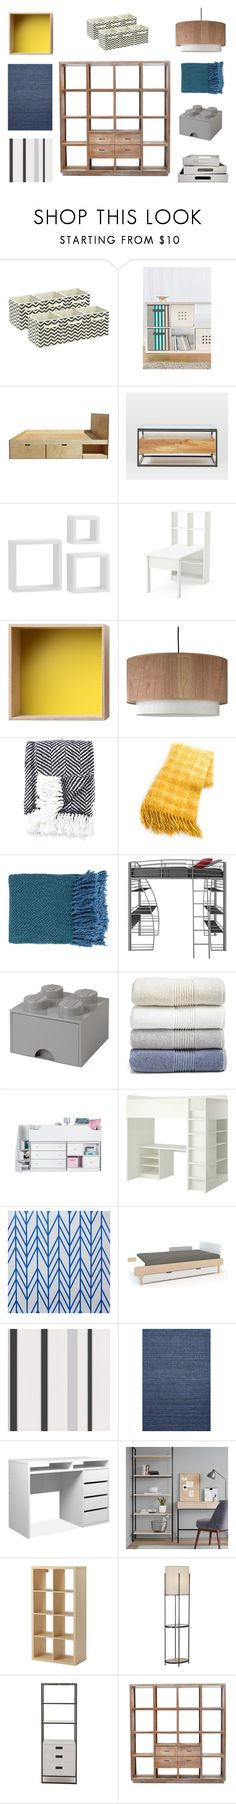 Bez tytułu #2 by ali-poz on Polyvore featuring interior, interiors, interior design, dom, home decor, interior decorating, West Elm, South Shore, Lights Up! and Robert Abbey